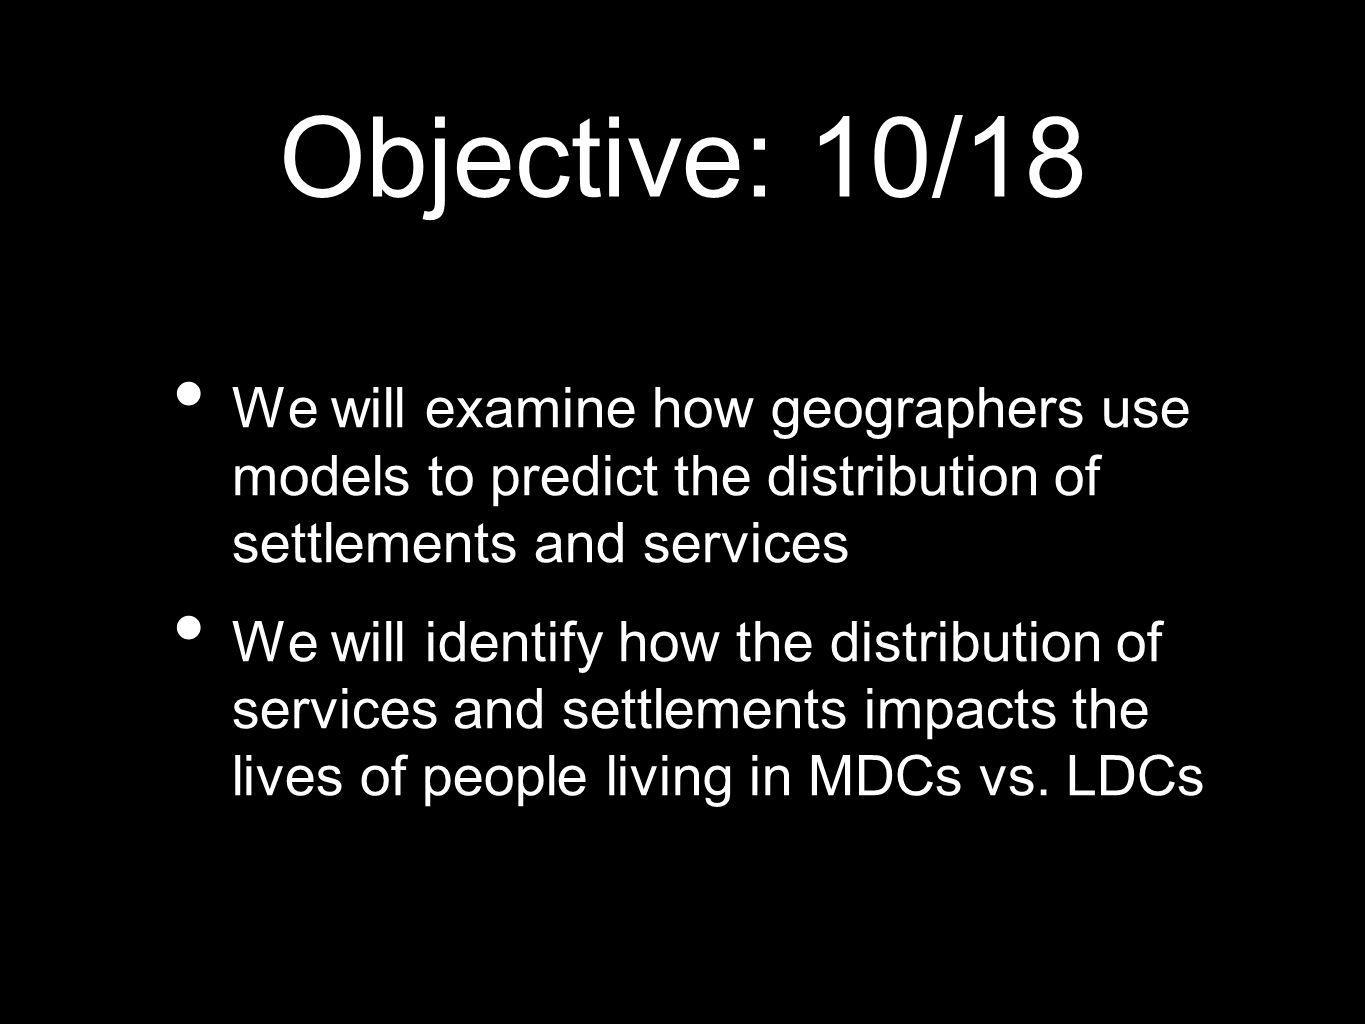 Objective: 10/18 We will examine how geographers use models to predict the distribution of settlements and services.